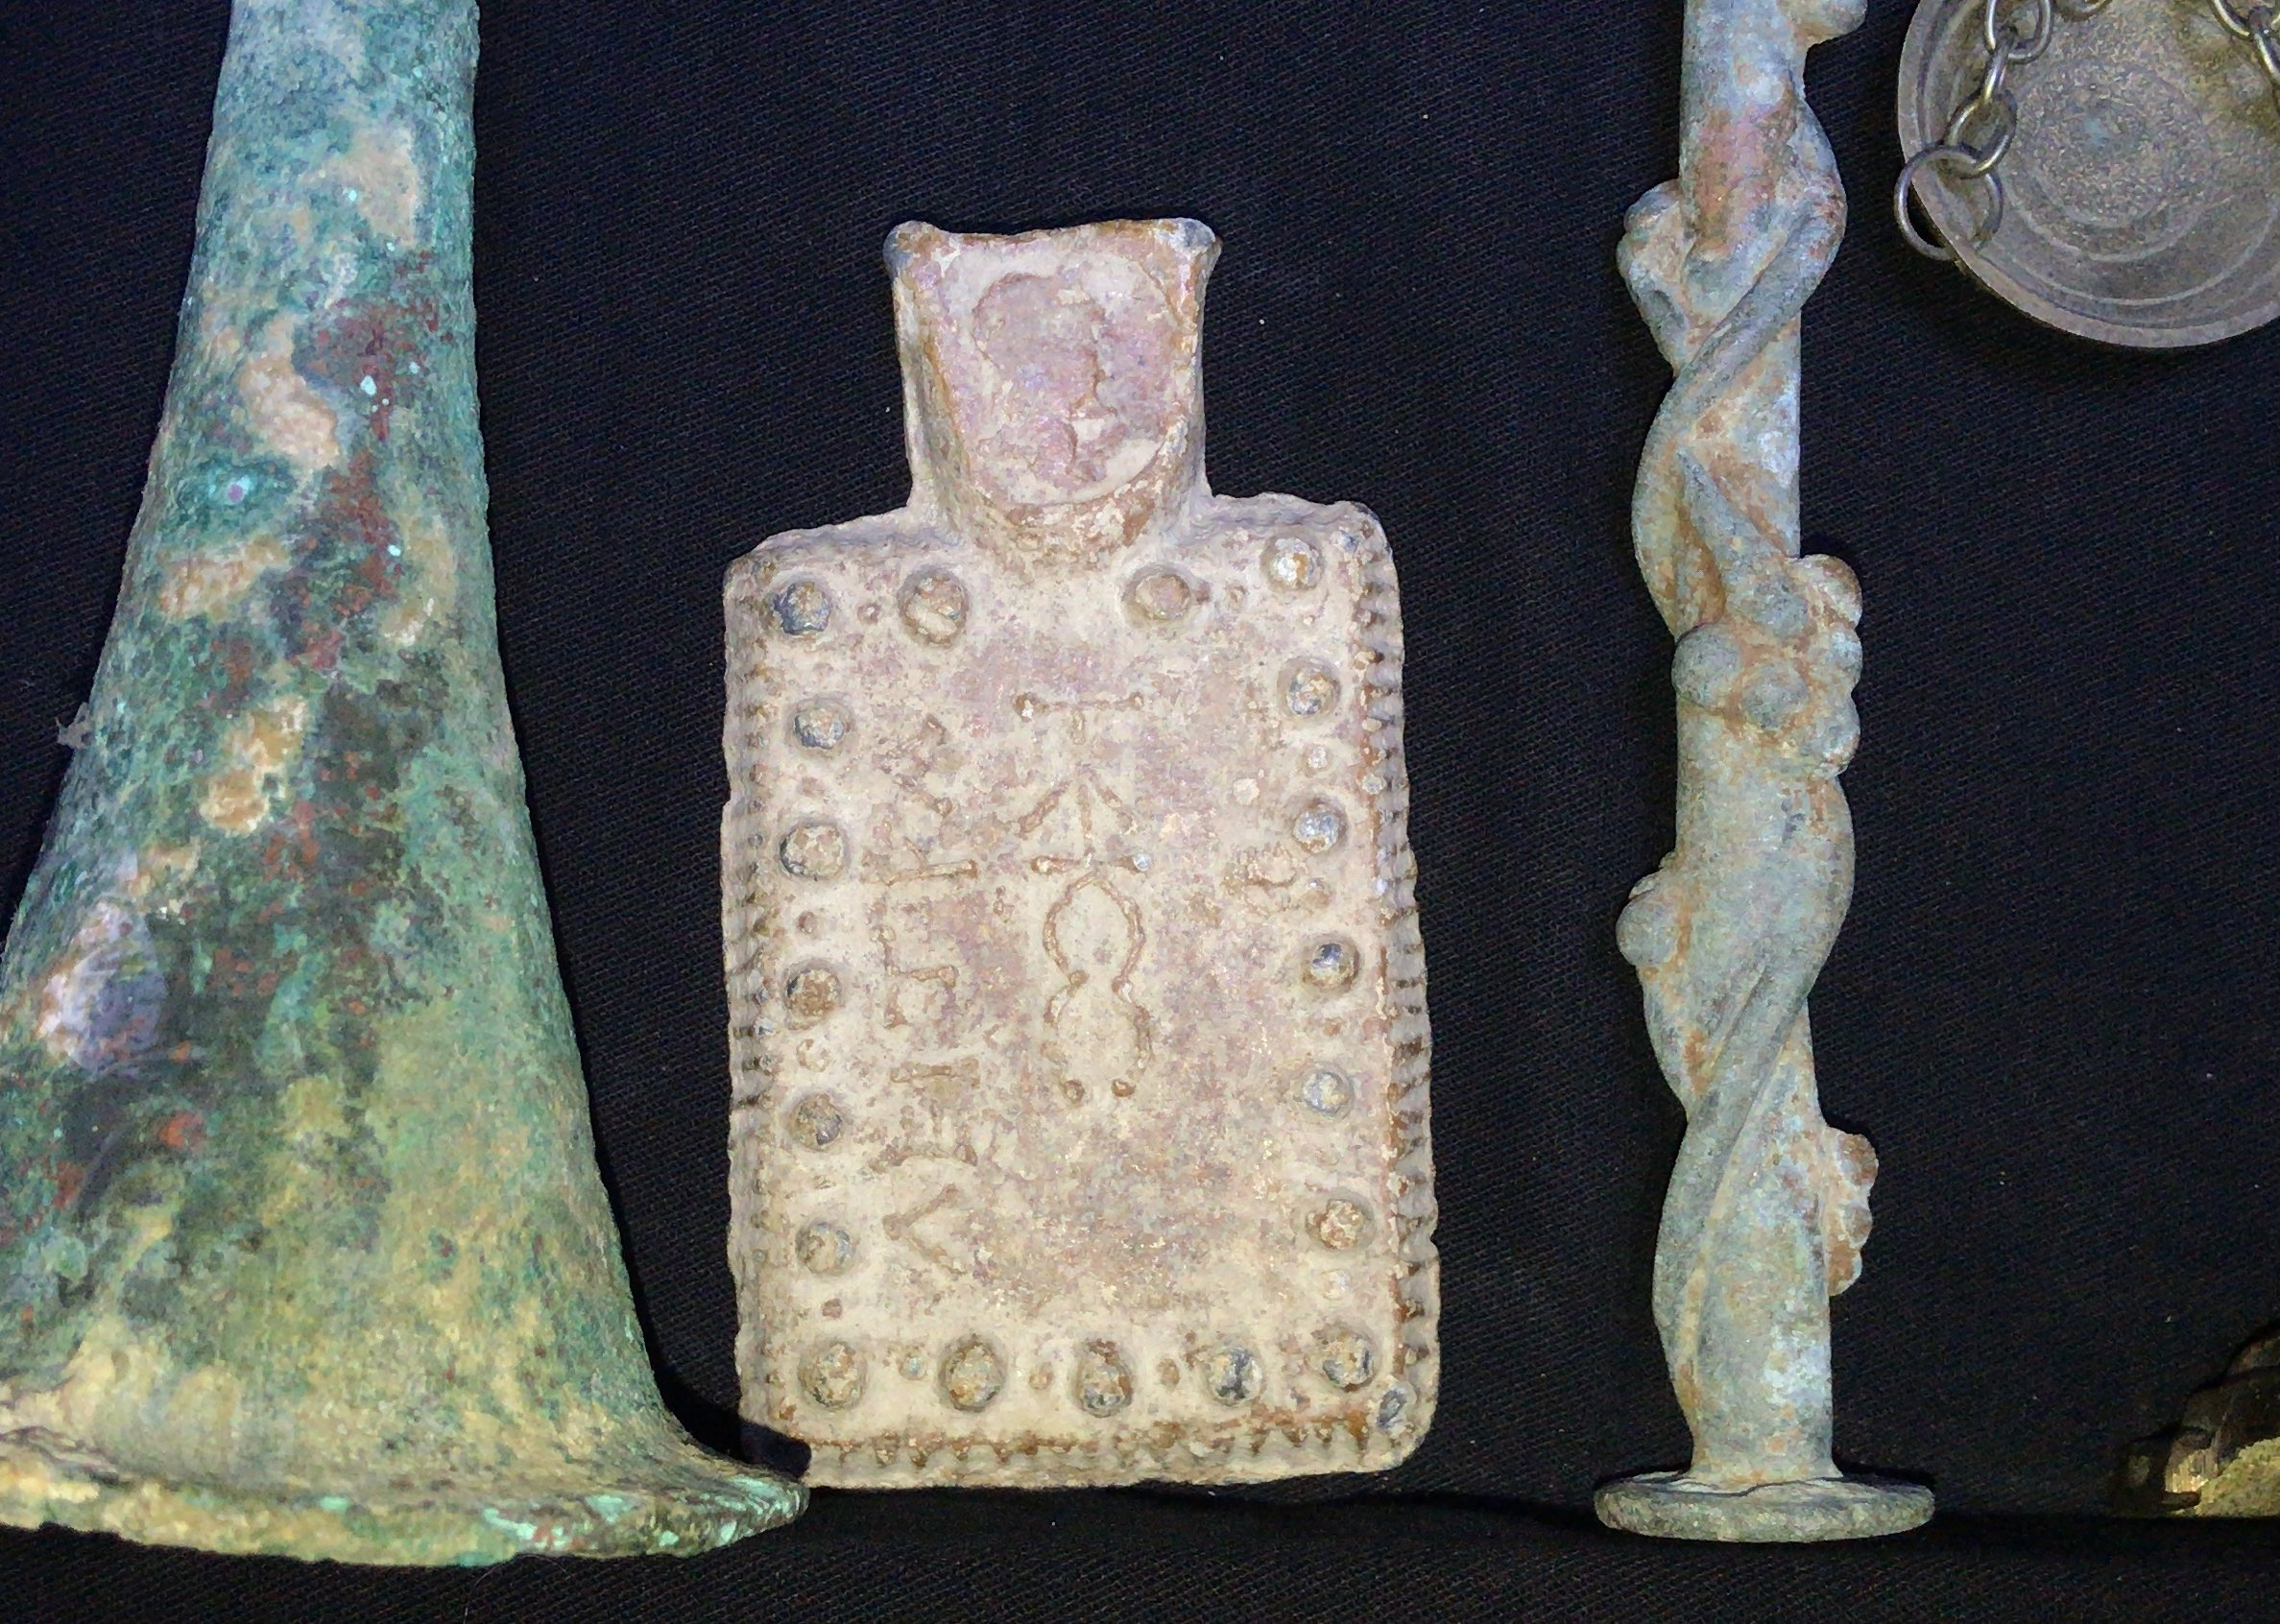 Artifacts, including 'world's 1st medical diploma,' seized from smugglers in Turkey